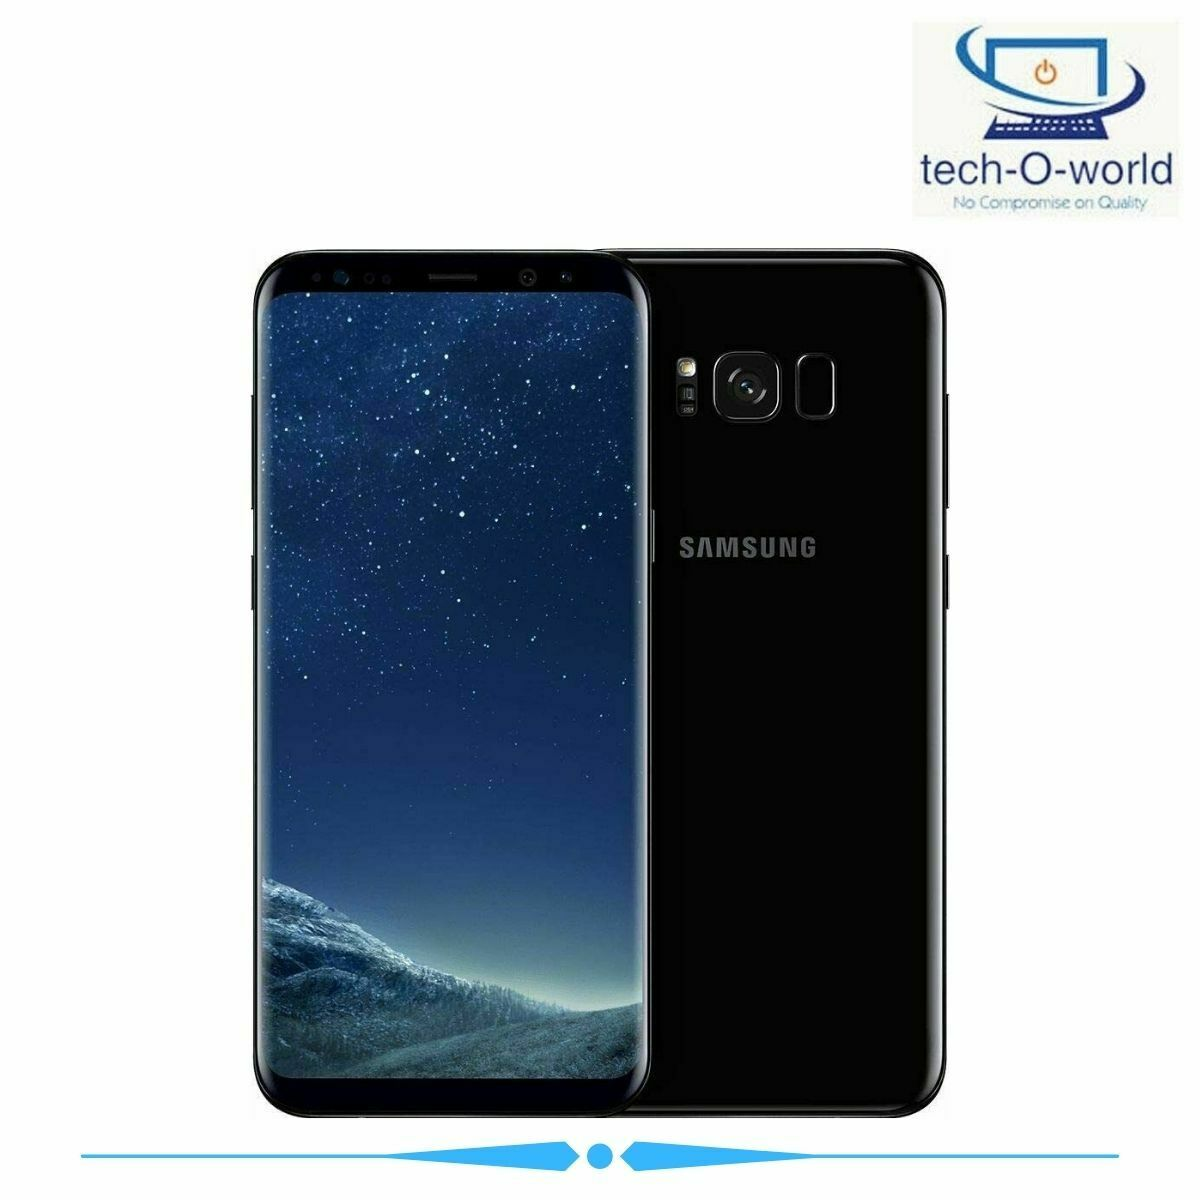 Android Phone - SIM Free Samsung Galaxy S8 5.8 Inch 64GB 12MP 4G Mobile Phone